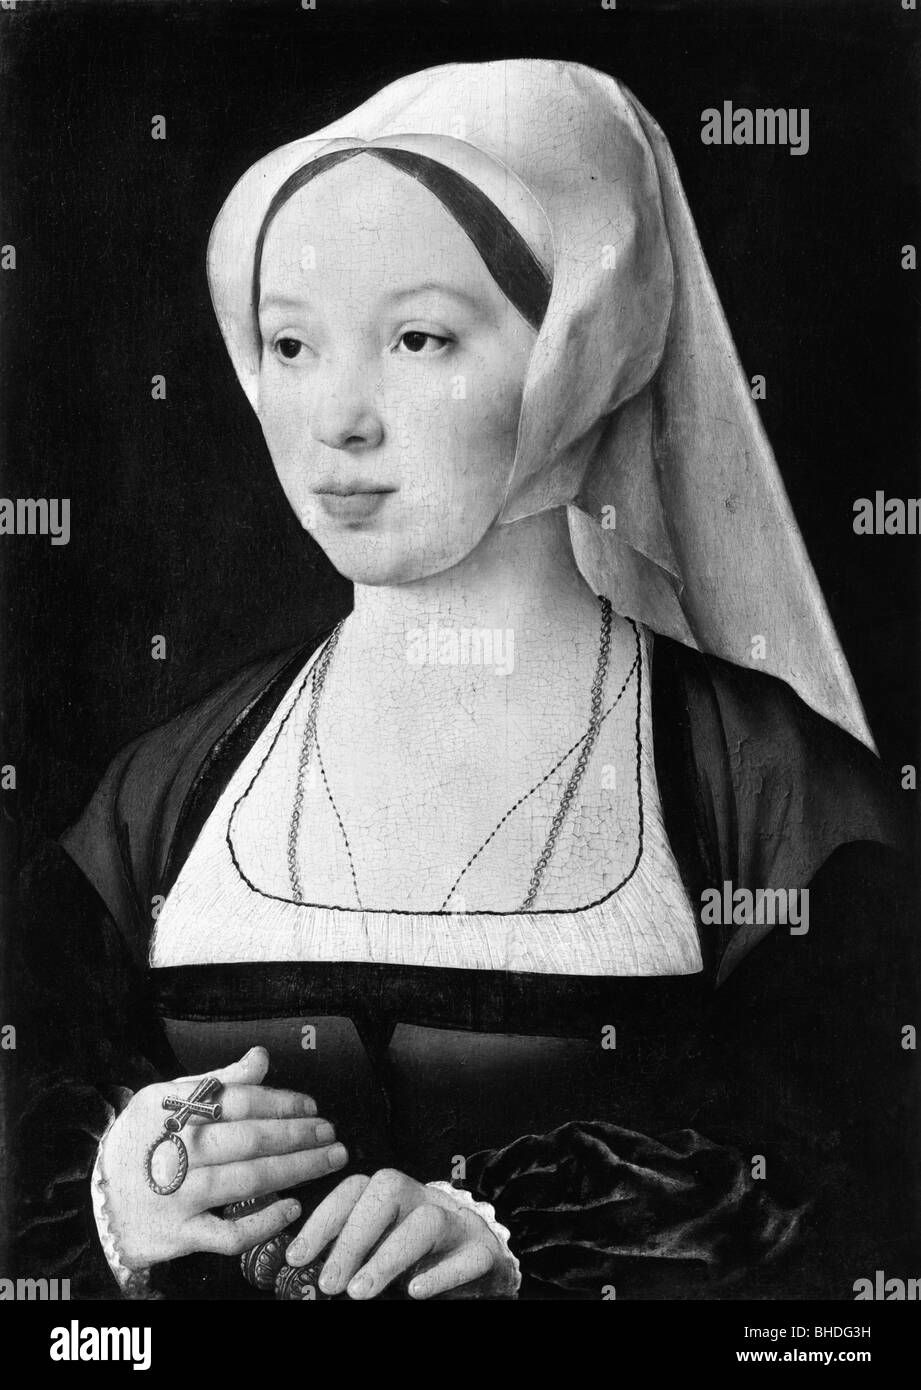 people, women, 16th - 18th century, portrait of a woman, painting by Joos van Cleve (1485 - 1540), 16th century, - Stock Image